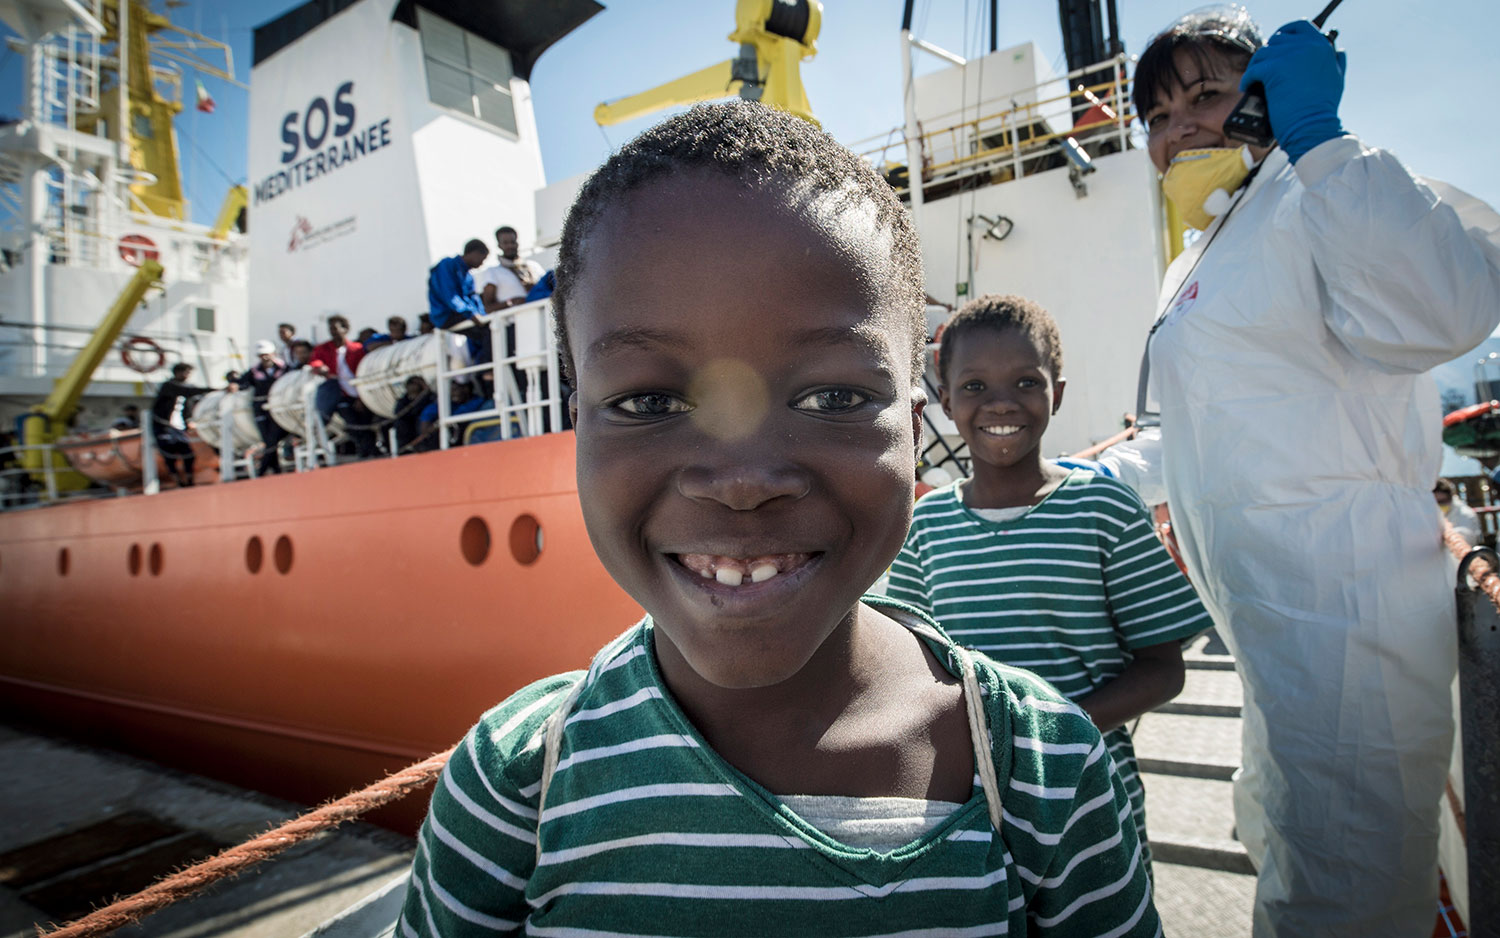 Lorum ipsum dolor; Children smile as they disembark the Aquarius in Palermo. October 13, 2017.